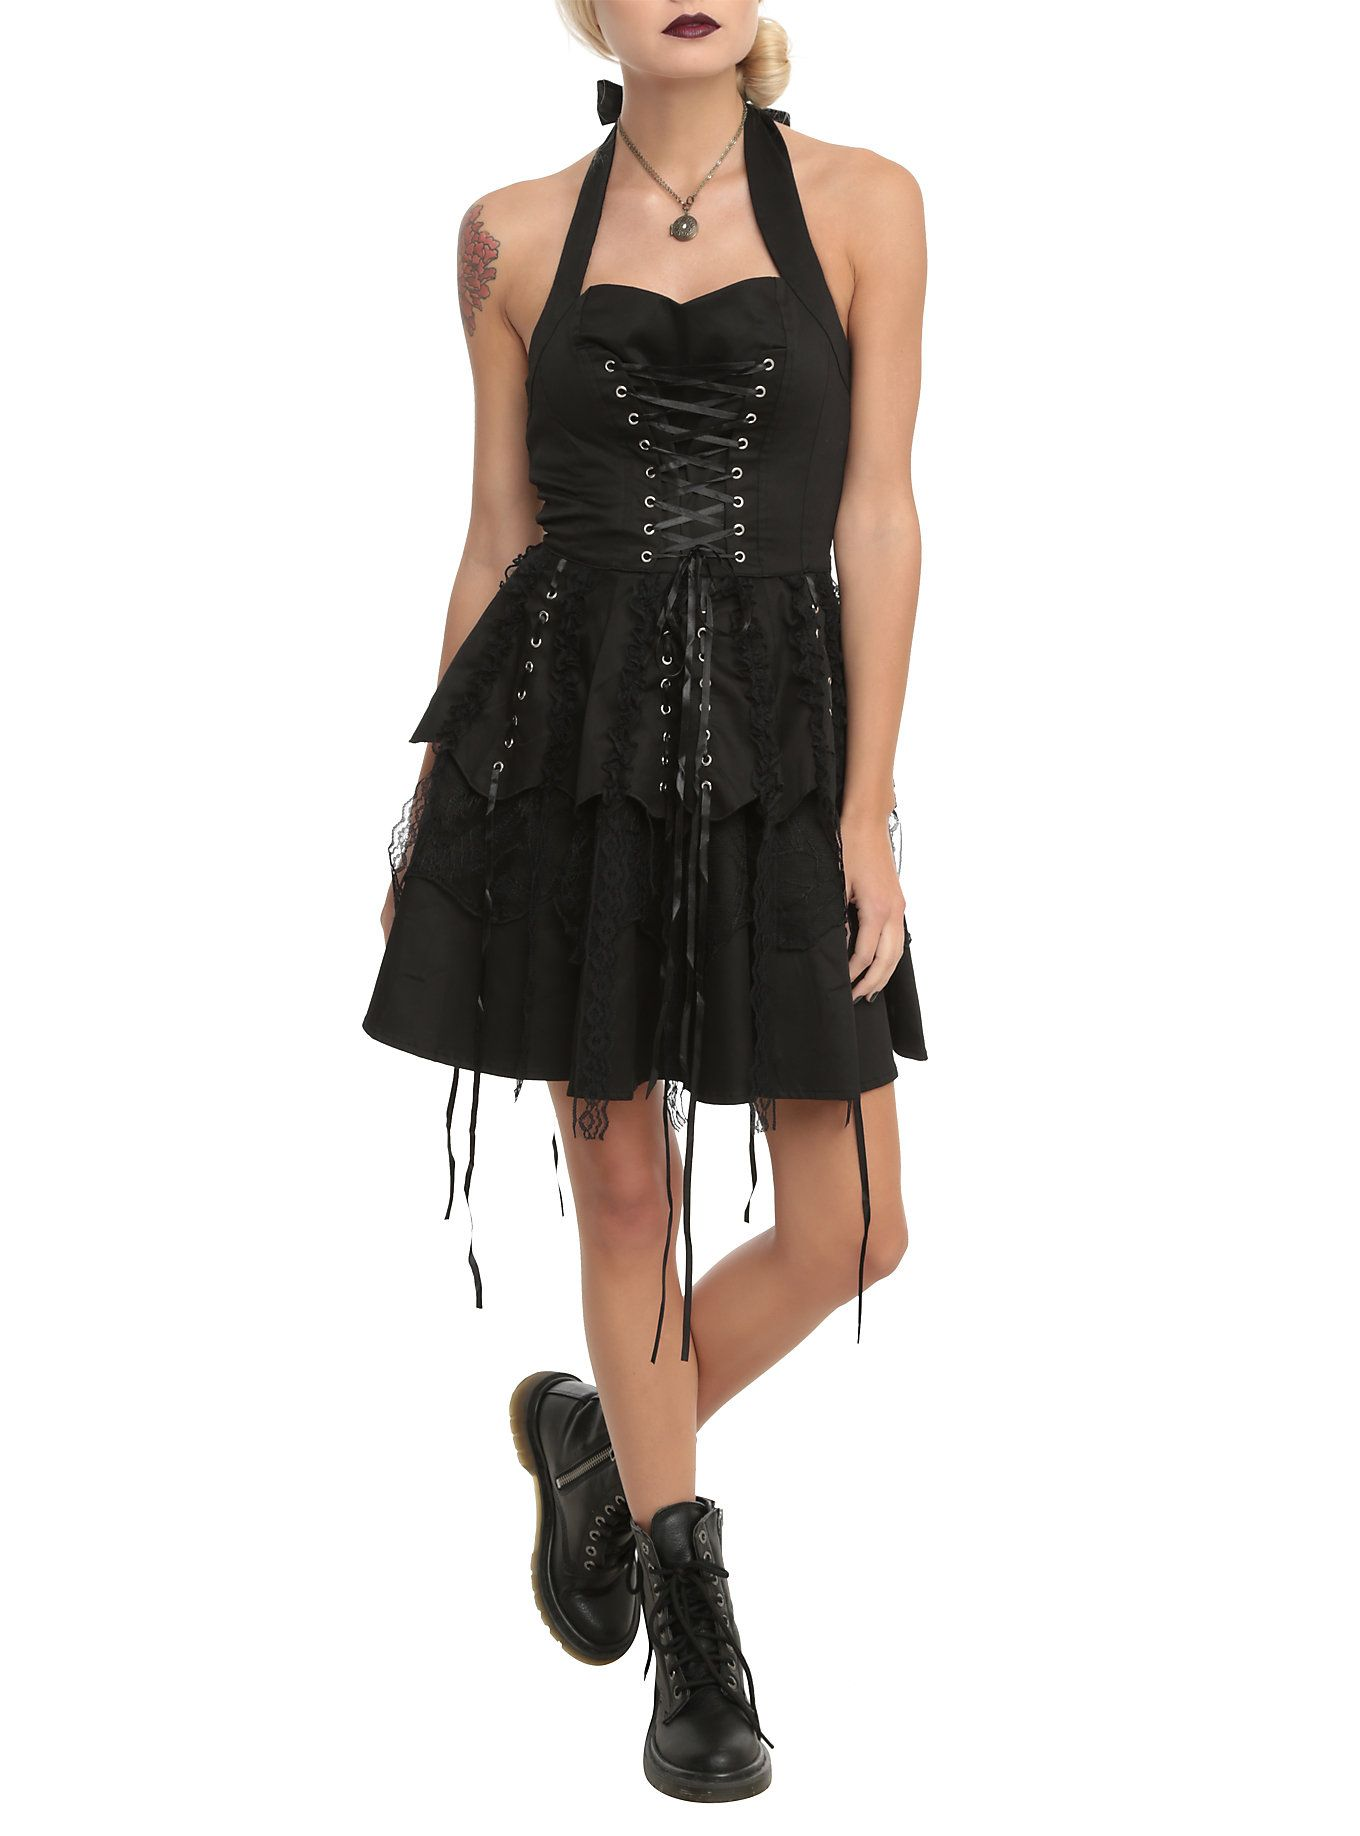 Hearts u roses black corset ruffle mini dress black corset mini